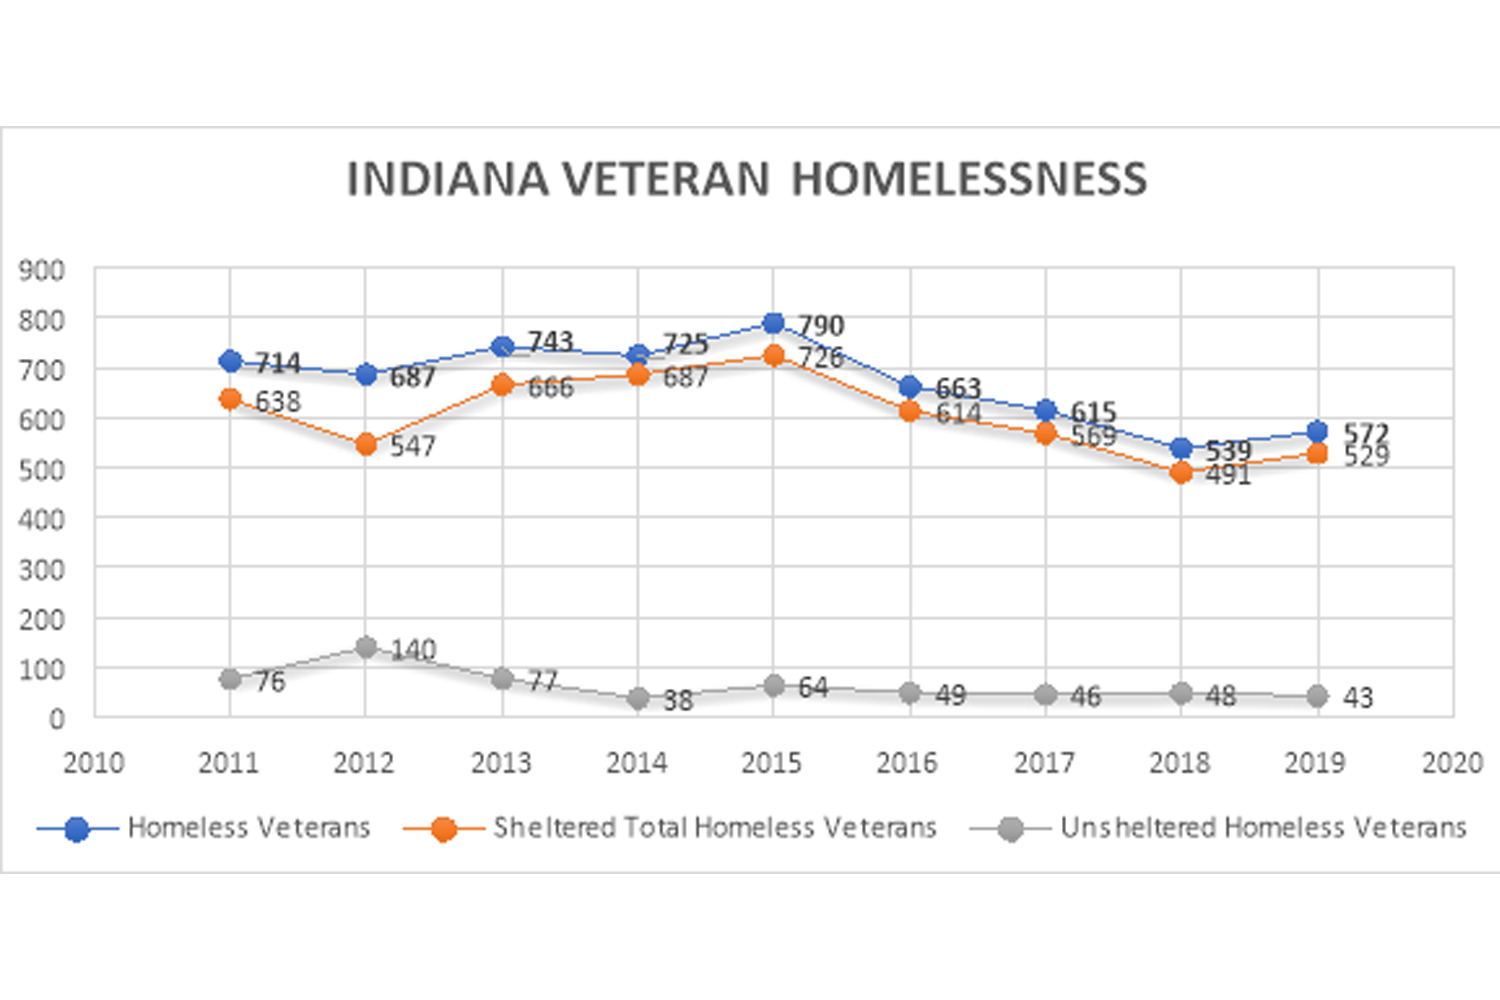 A graph from the U.S. Department of Housing and Urban Development about homeless veterans in Indiana.